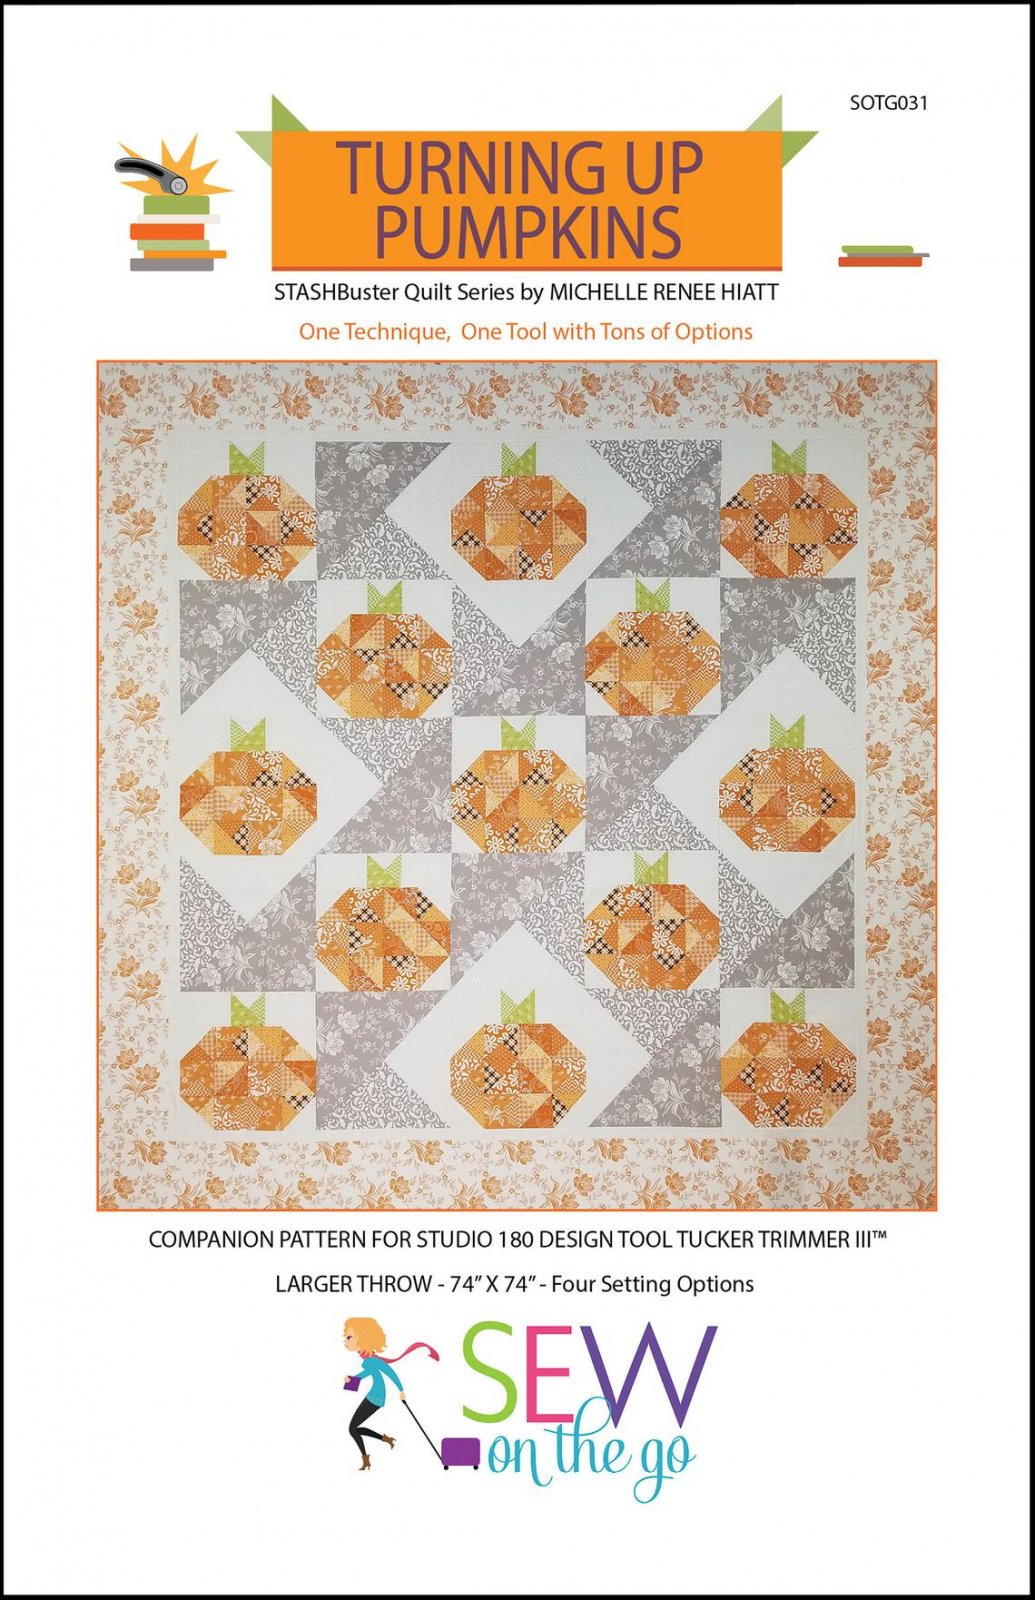 Turning Up Pumpkins pattern by Sew On the Go